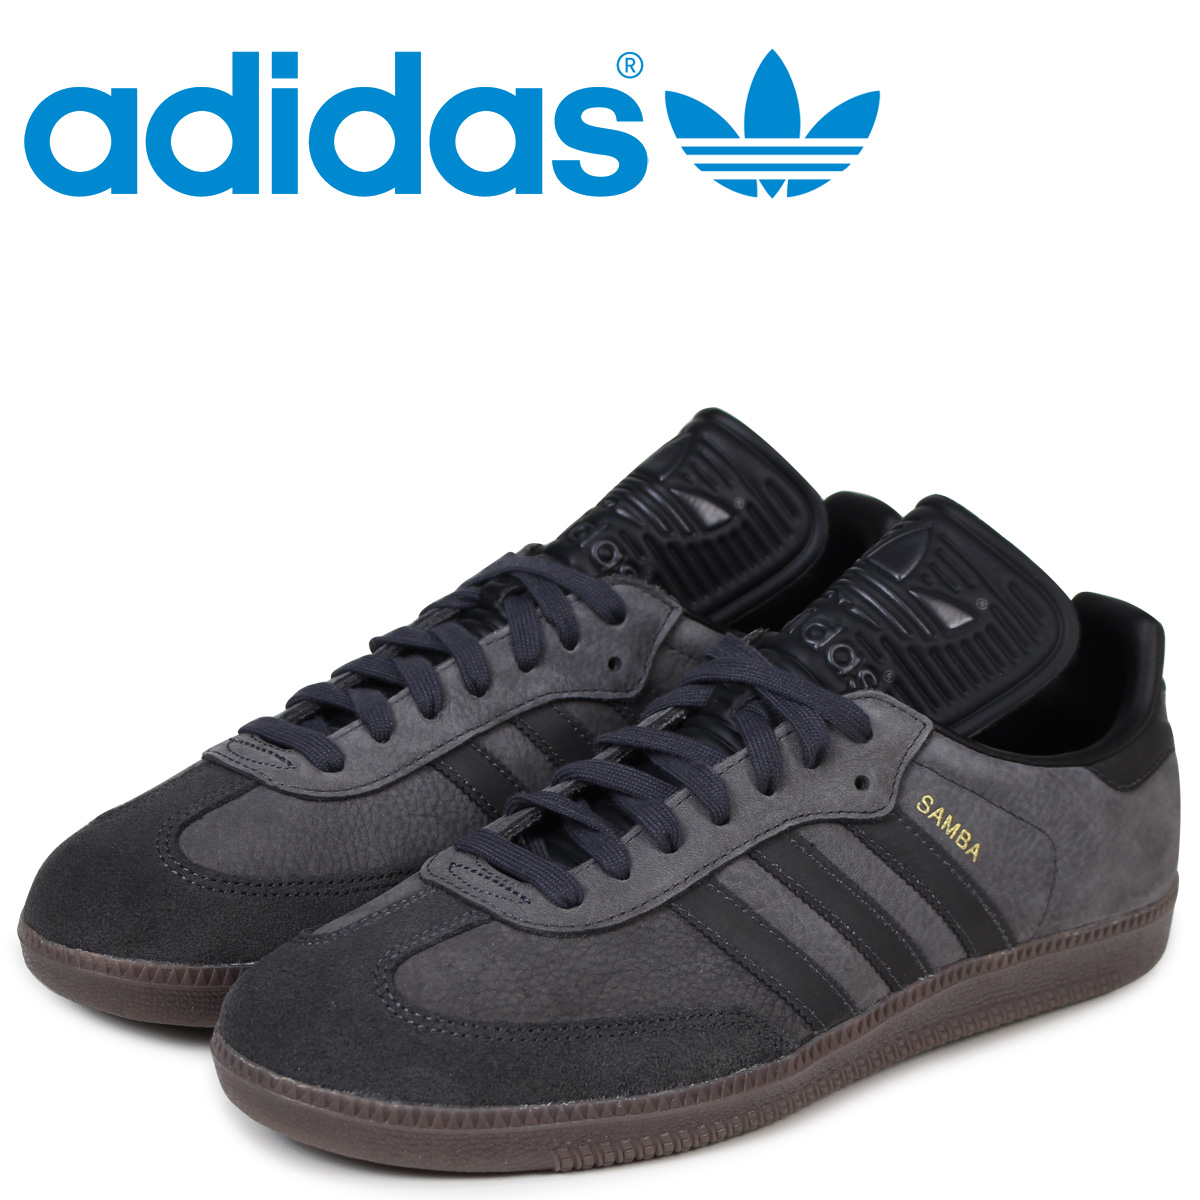 new style b5925 93fb6 adidas Originals samba Adidas sneakers SAMBA CLASSIC OG men BZ0227 black  originals  load planned Shinnyu load in reservation product 3 20 containing